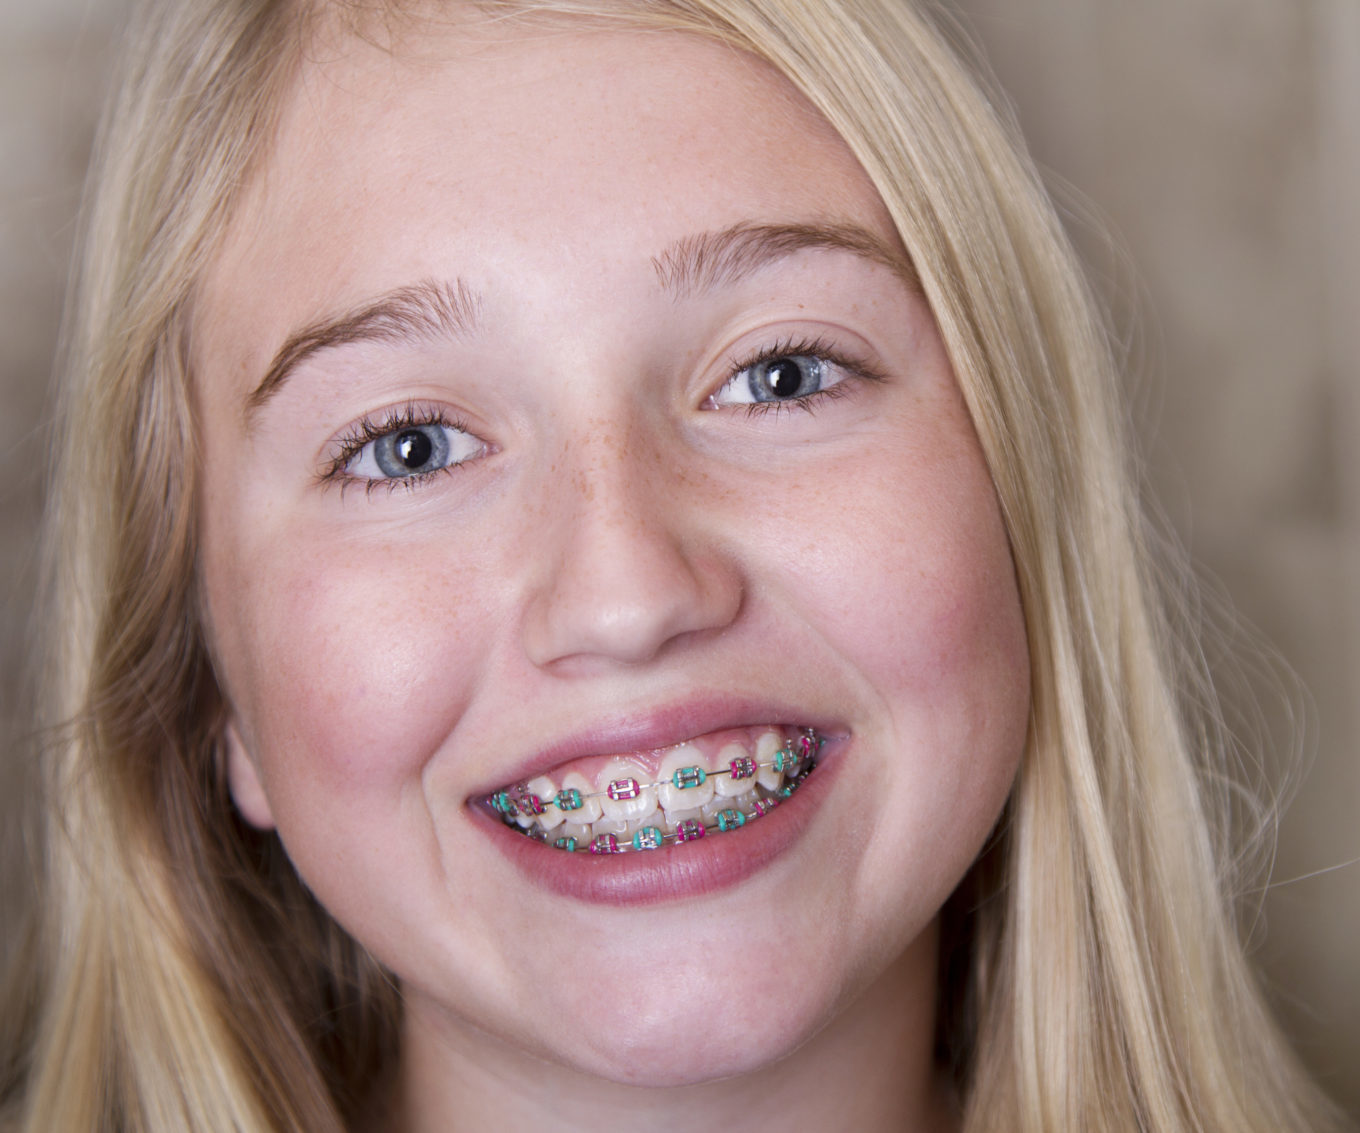 teen girl with multicolored braces on her teeth